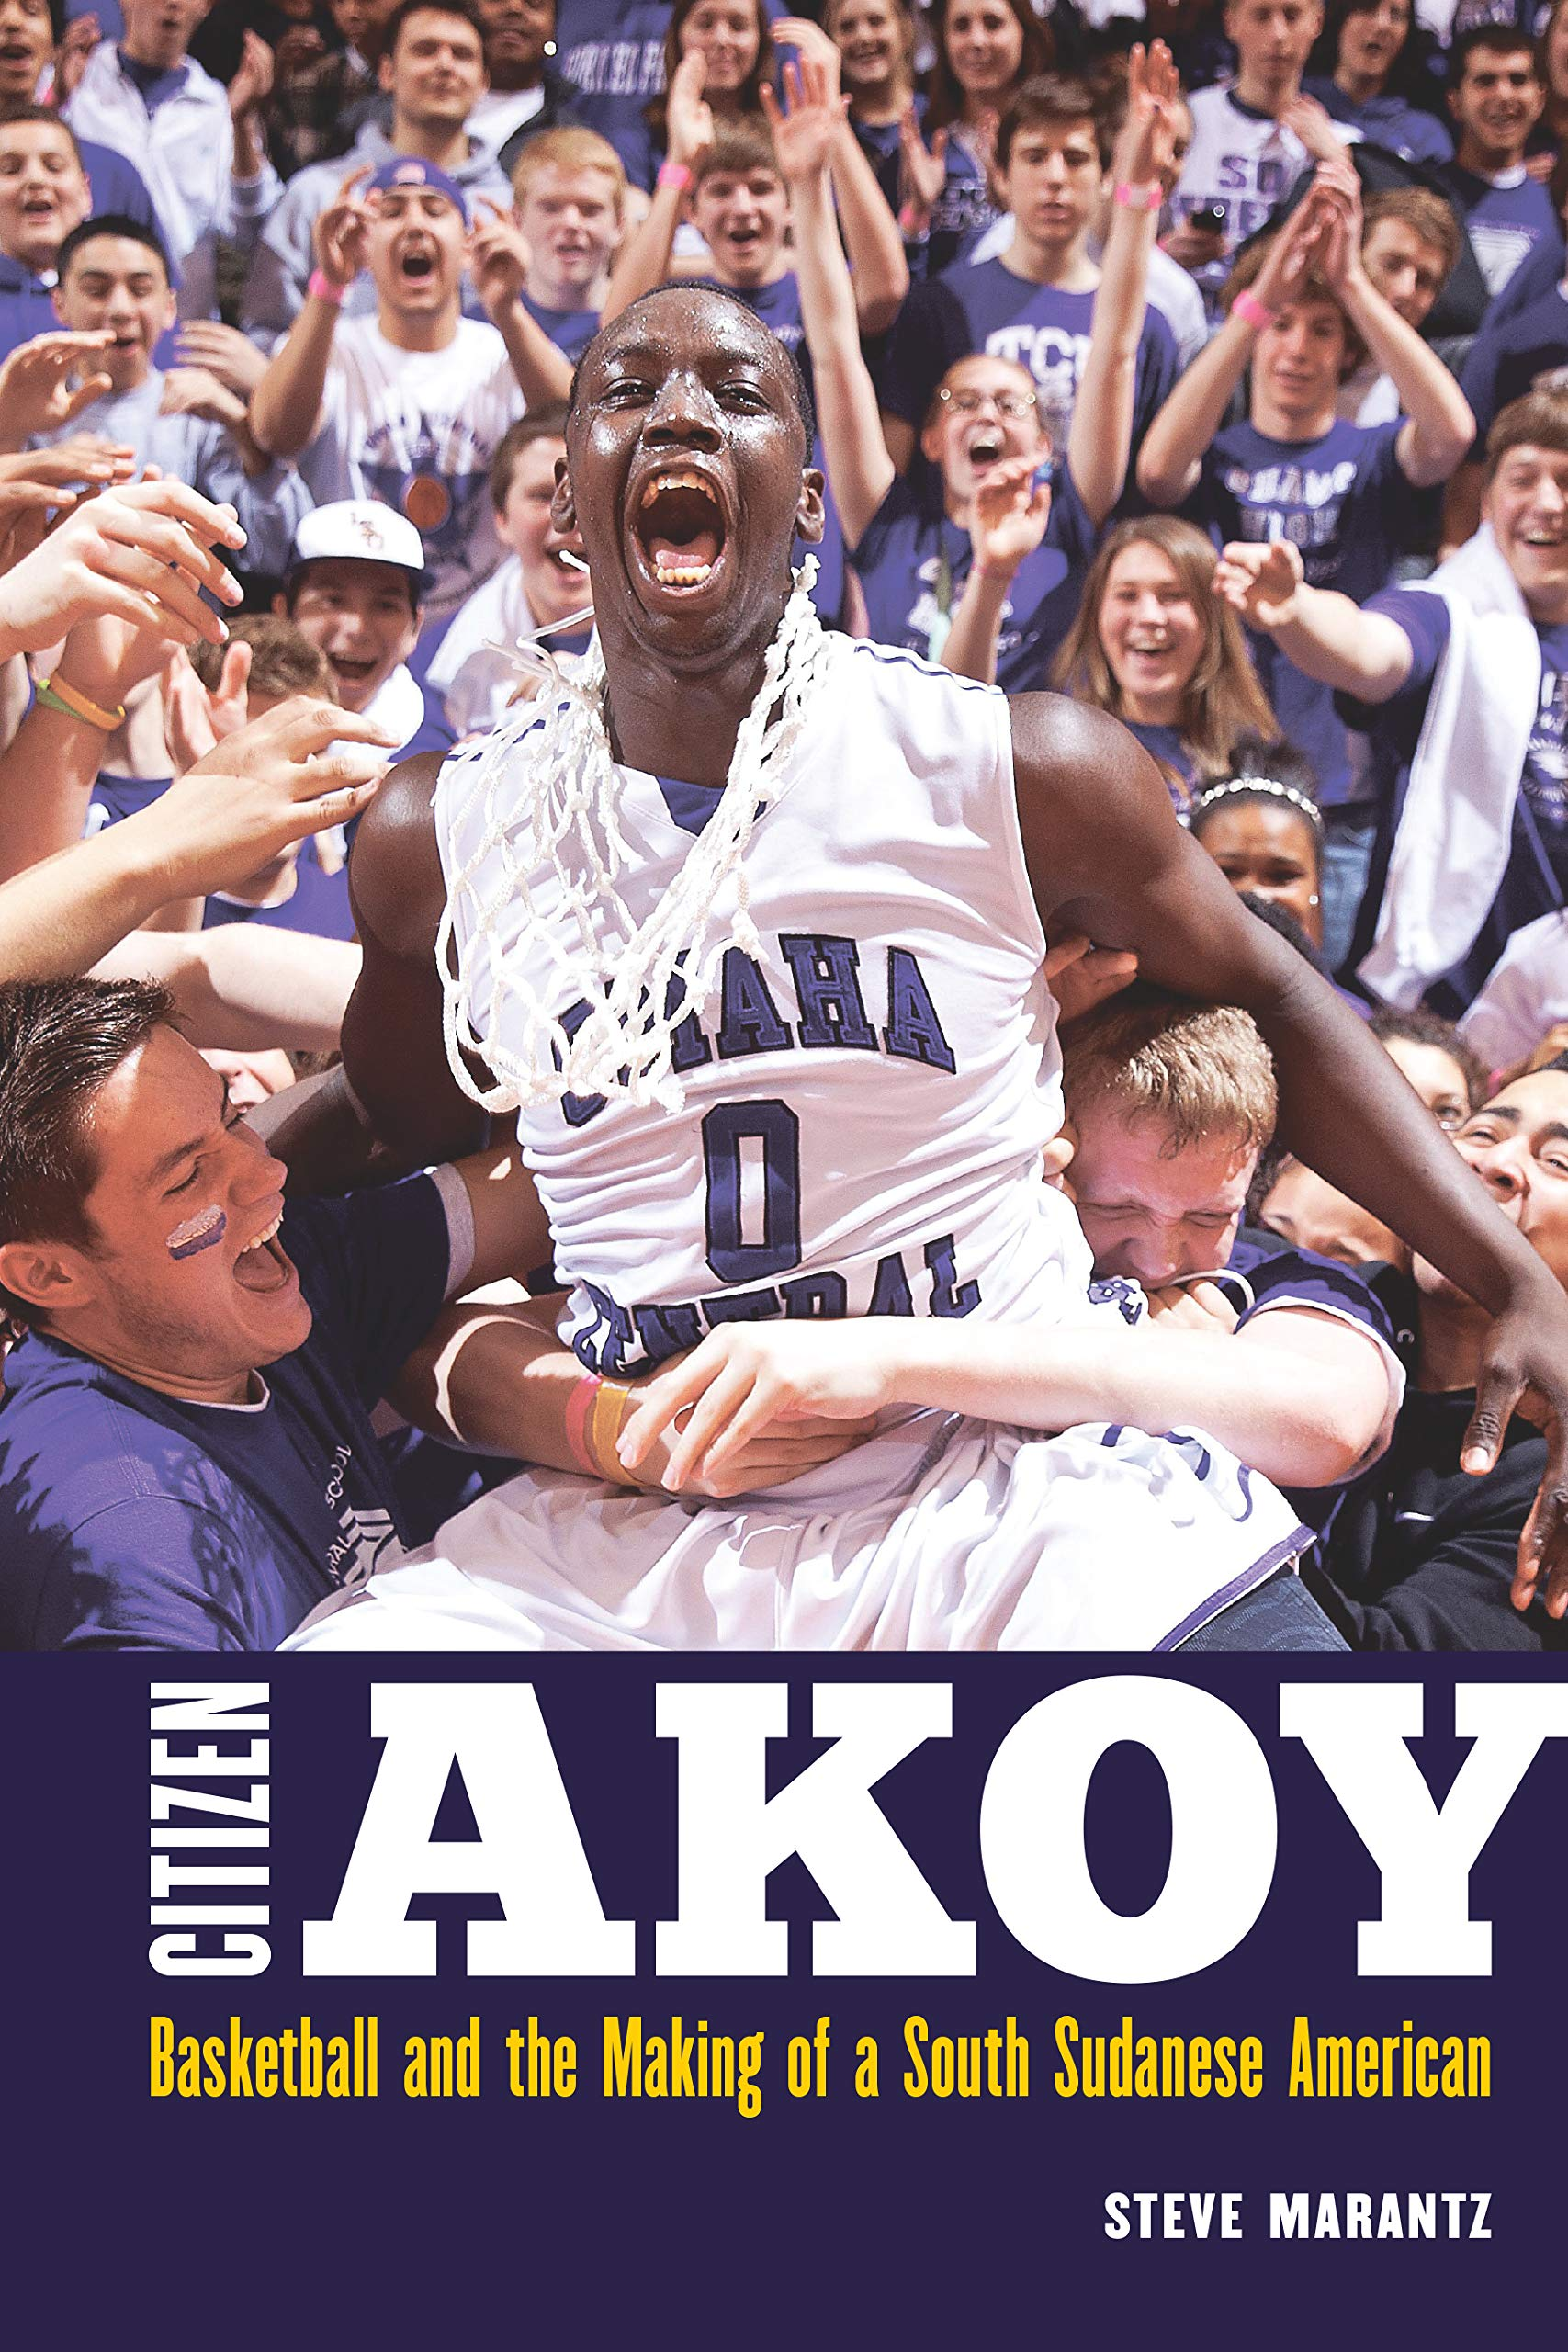 Image OfCitizen Akoy: Basketball And The Making Of A South Sudanese American (English Edition)